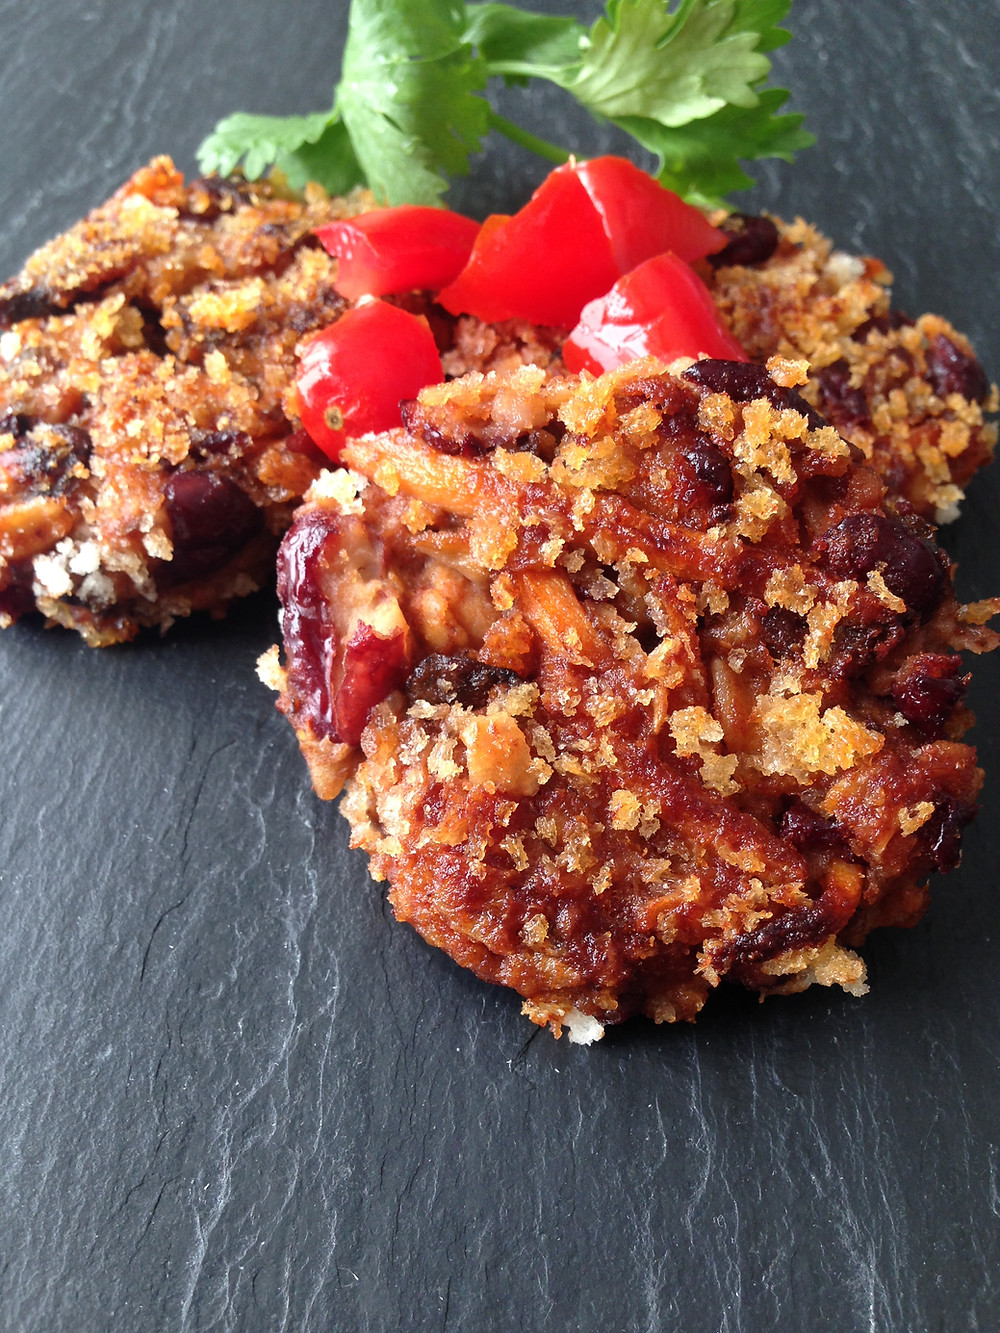 Red bean mushroom fritters - a great source of fiber and zinc